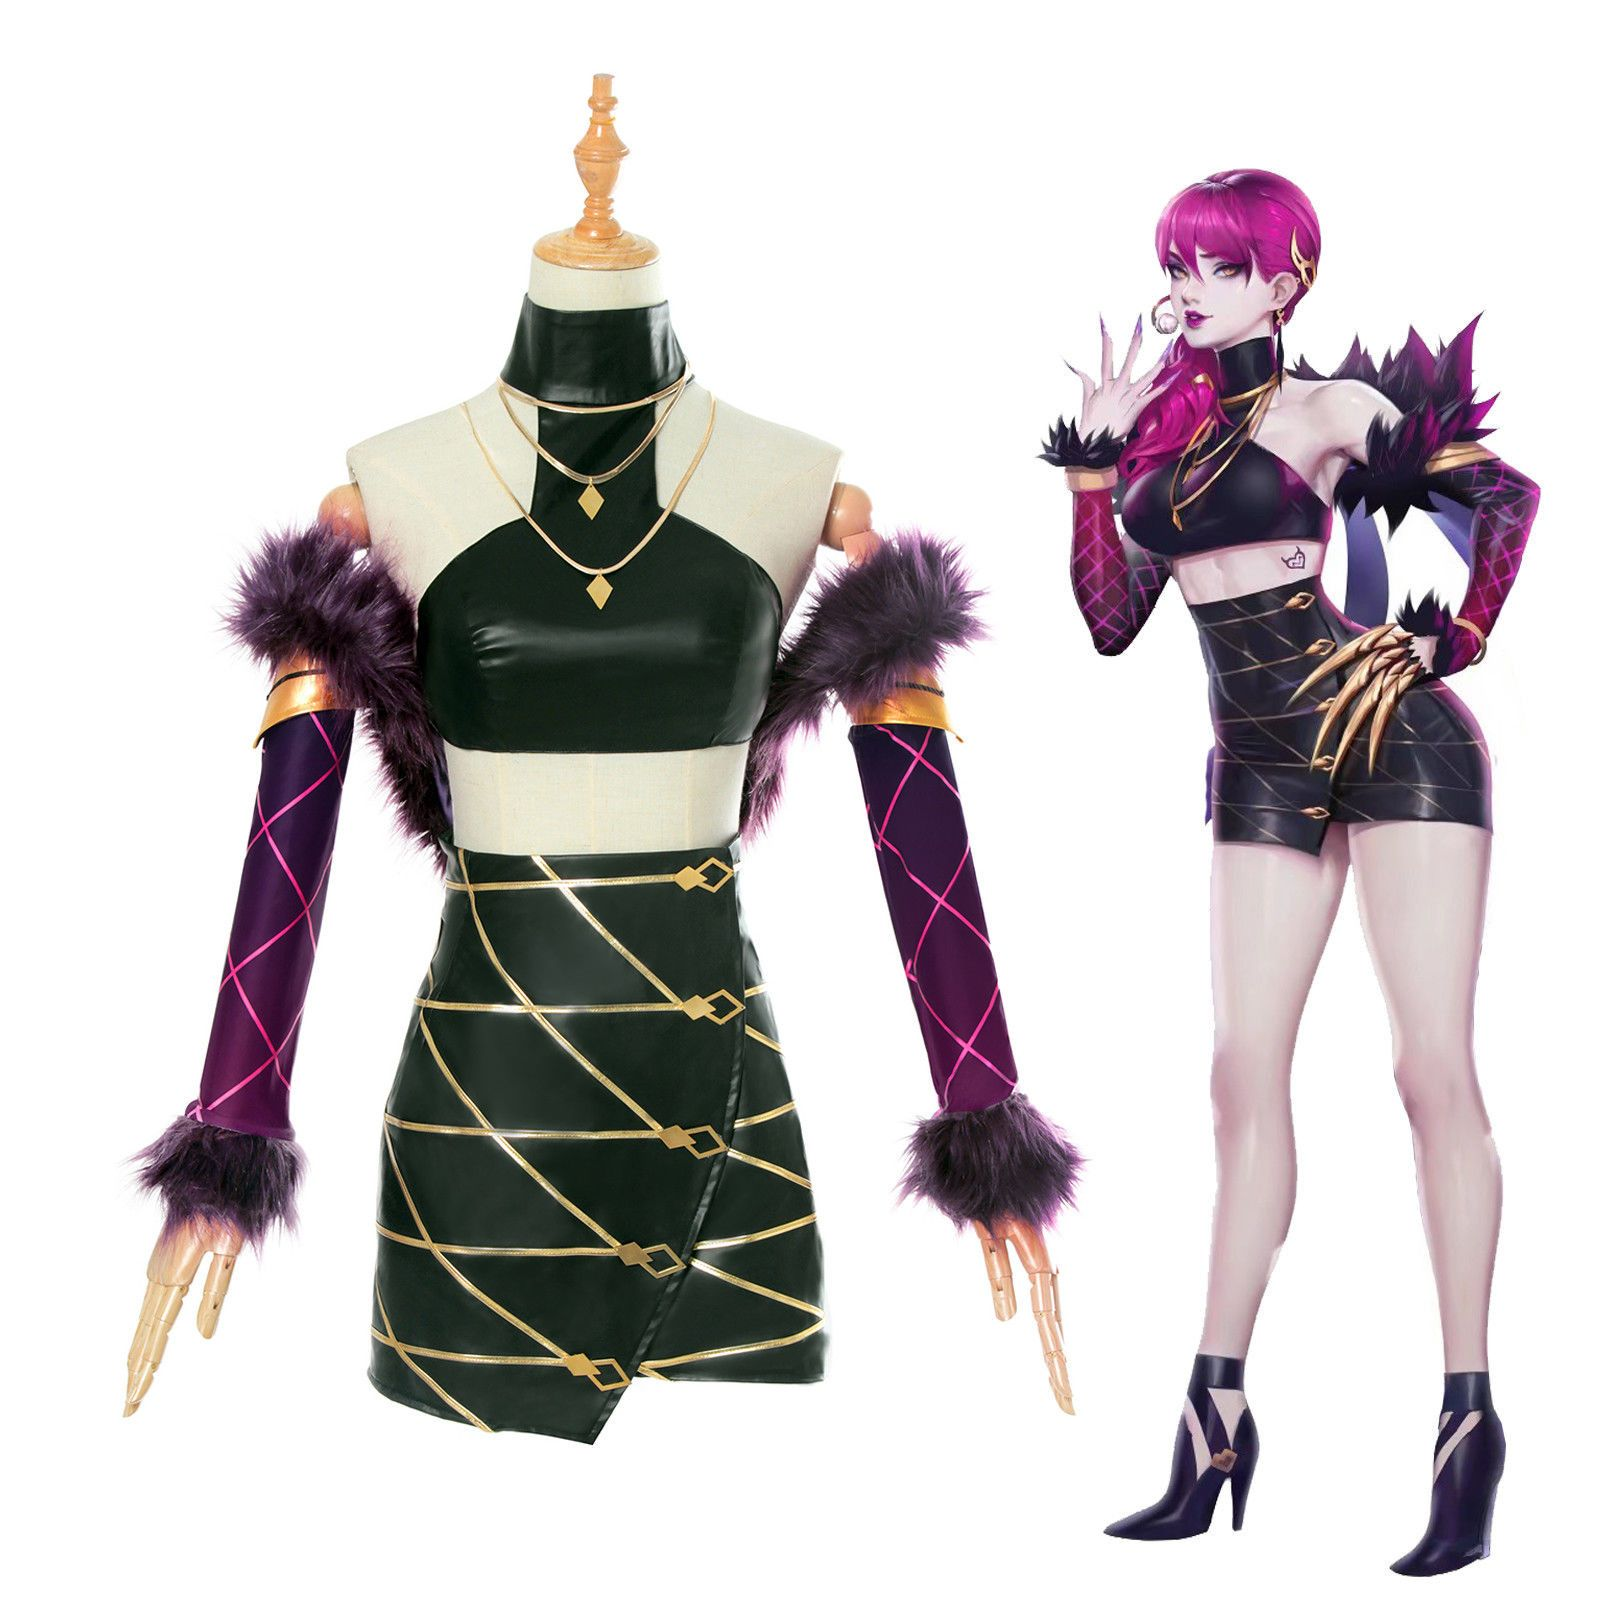 Game LOL League of Legends KDA Kaisa Cosplay Outfit Leather Punk Uniform Costume